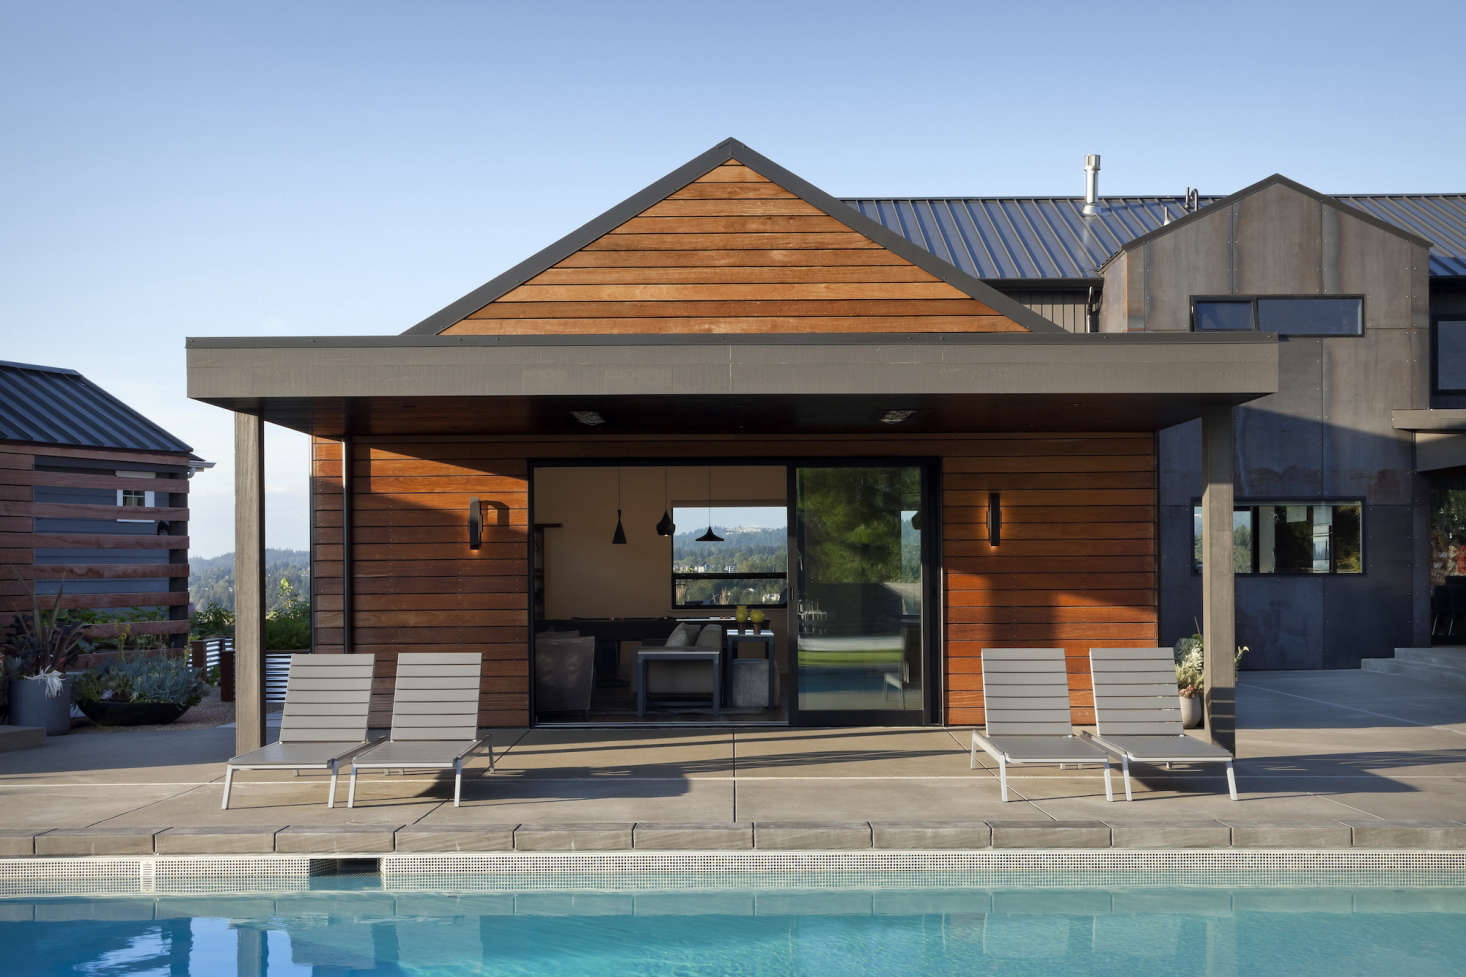 A media room is attached to the house but functions as an indoor-outdoor space during parties on the patio. Sliding glass doors open onto the pool deck, and a flat overhang creates shade for lounge chairs. The overhang and trim is paintedin Iron Ore from Sherwin-Williams.